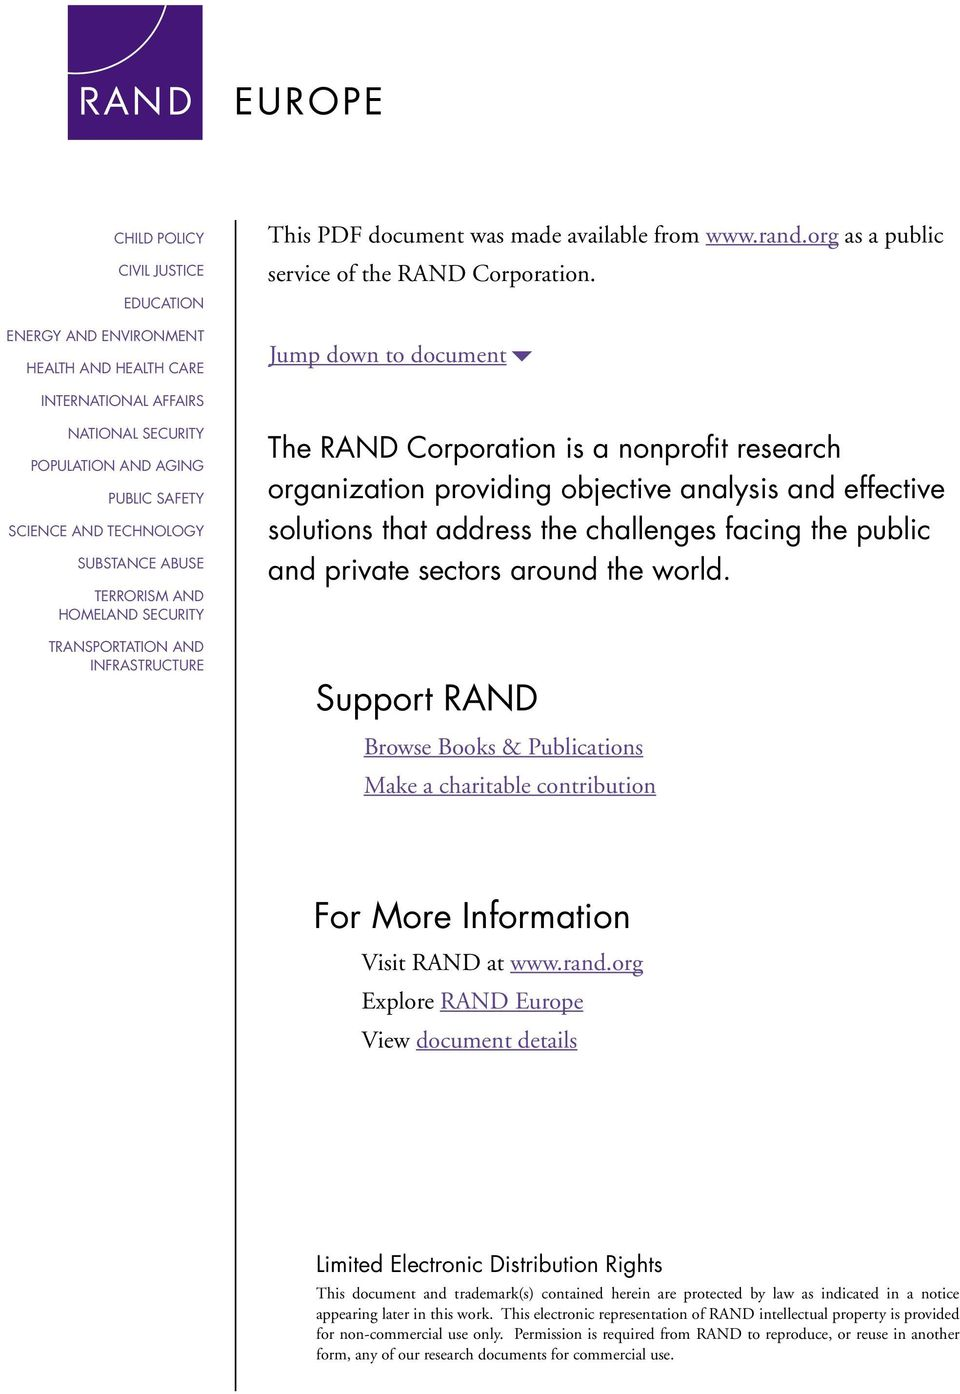 INFRASTRUCTURE The RAND Corporation is a nonprofit research organization providing objective analysis and effective solutions that address the challenges facing the public and private sectors around